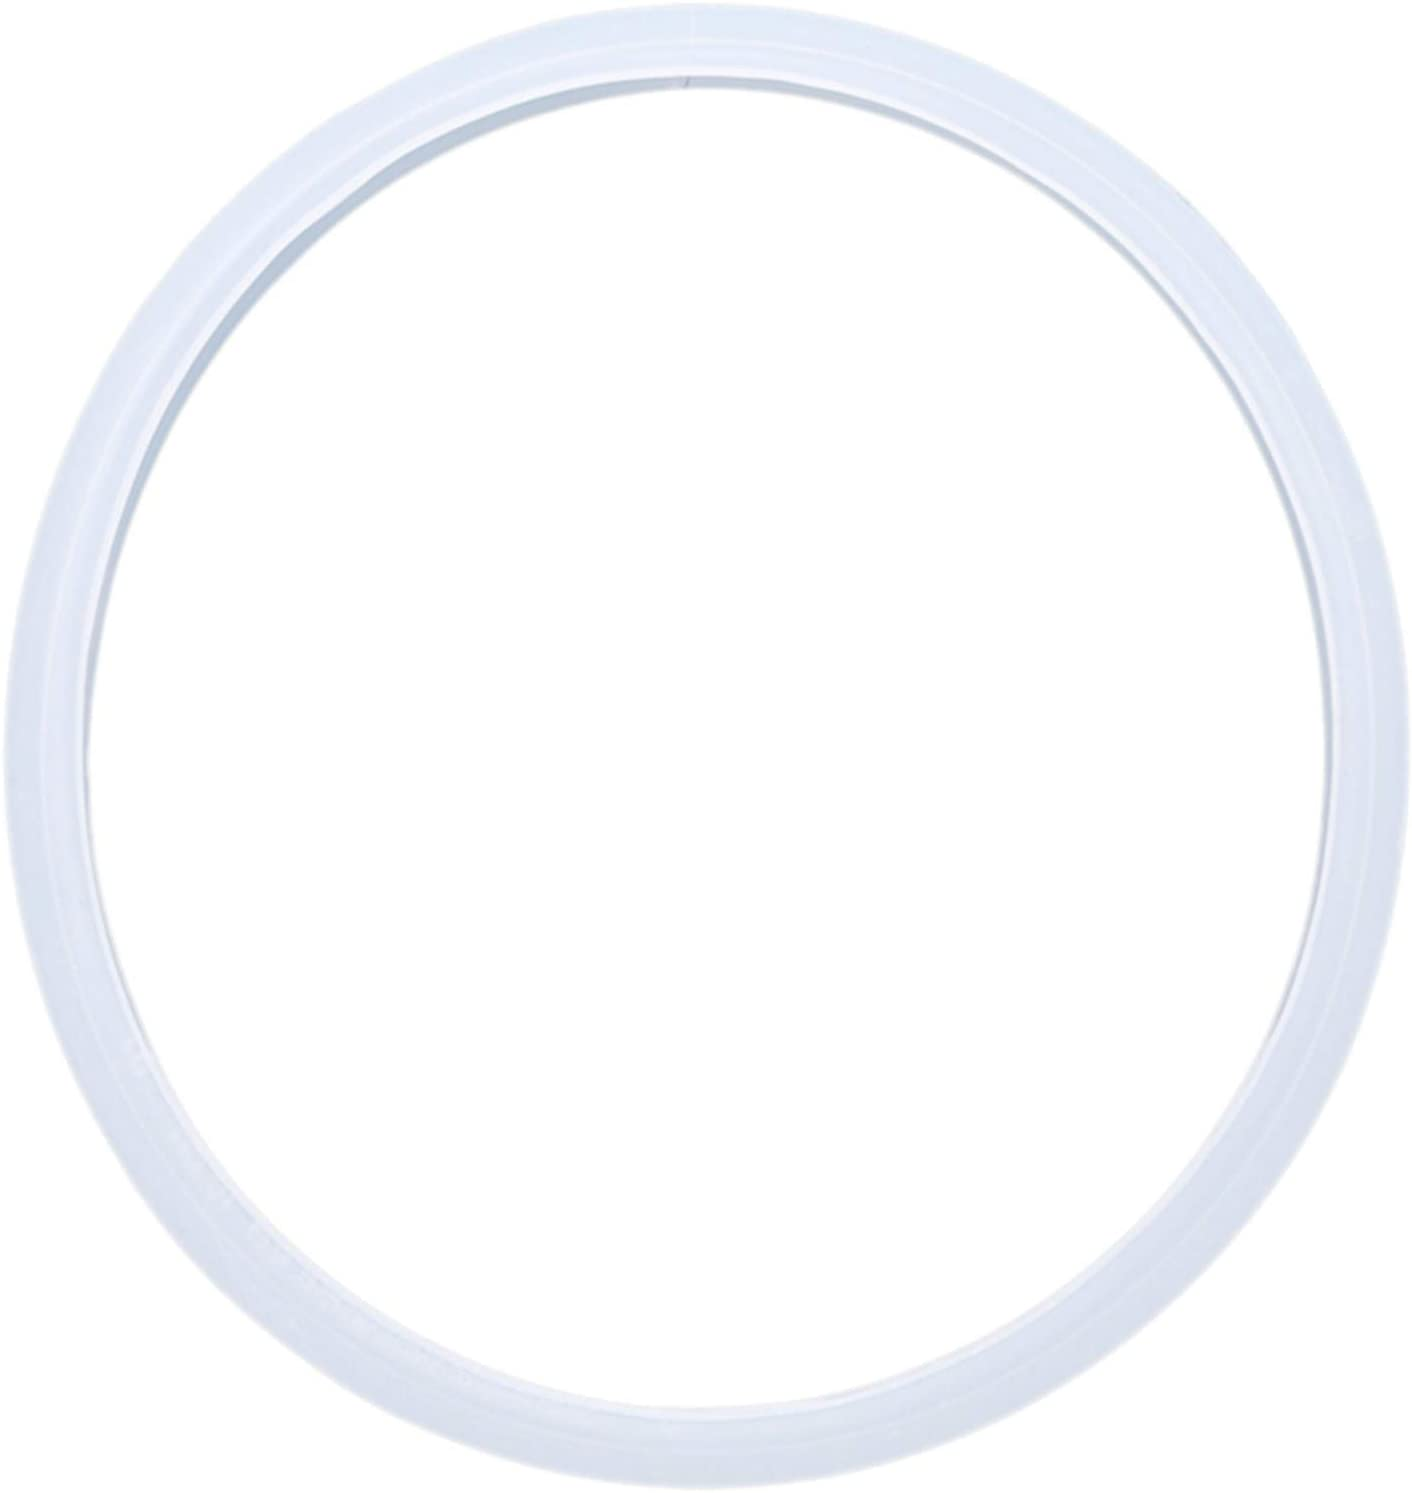 LZIYAN Transparent Silicone Gasket Sealing Rings for Pressure Cooker Pot Kitchen Tool for Home Use,7.09 inch